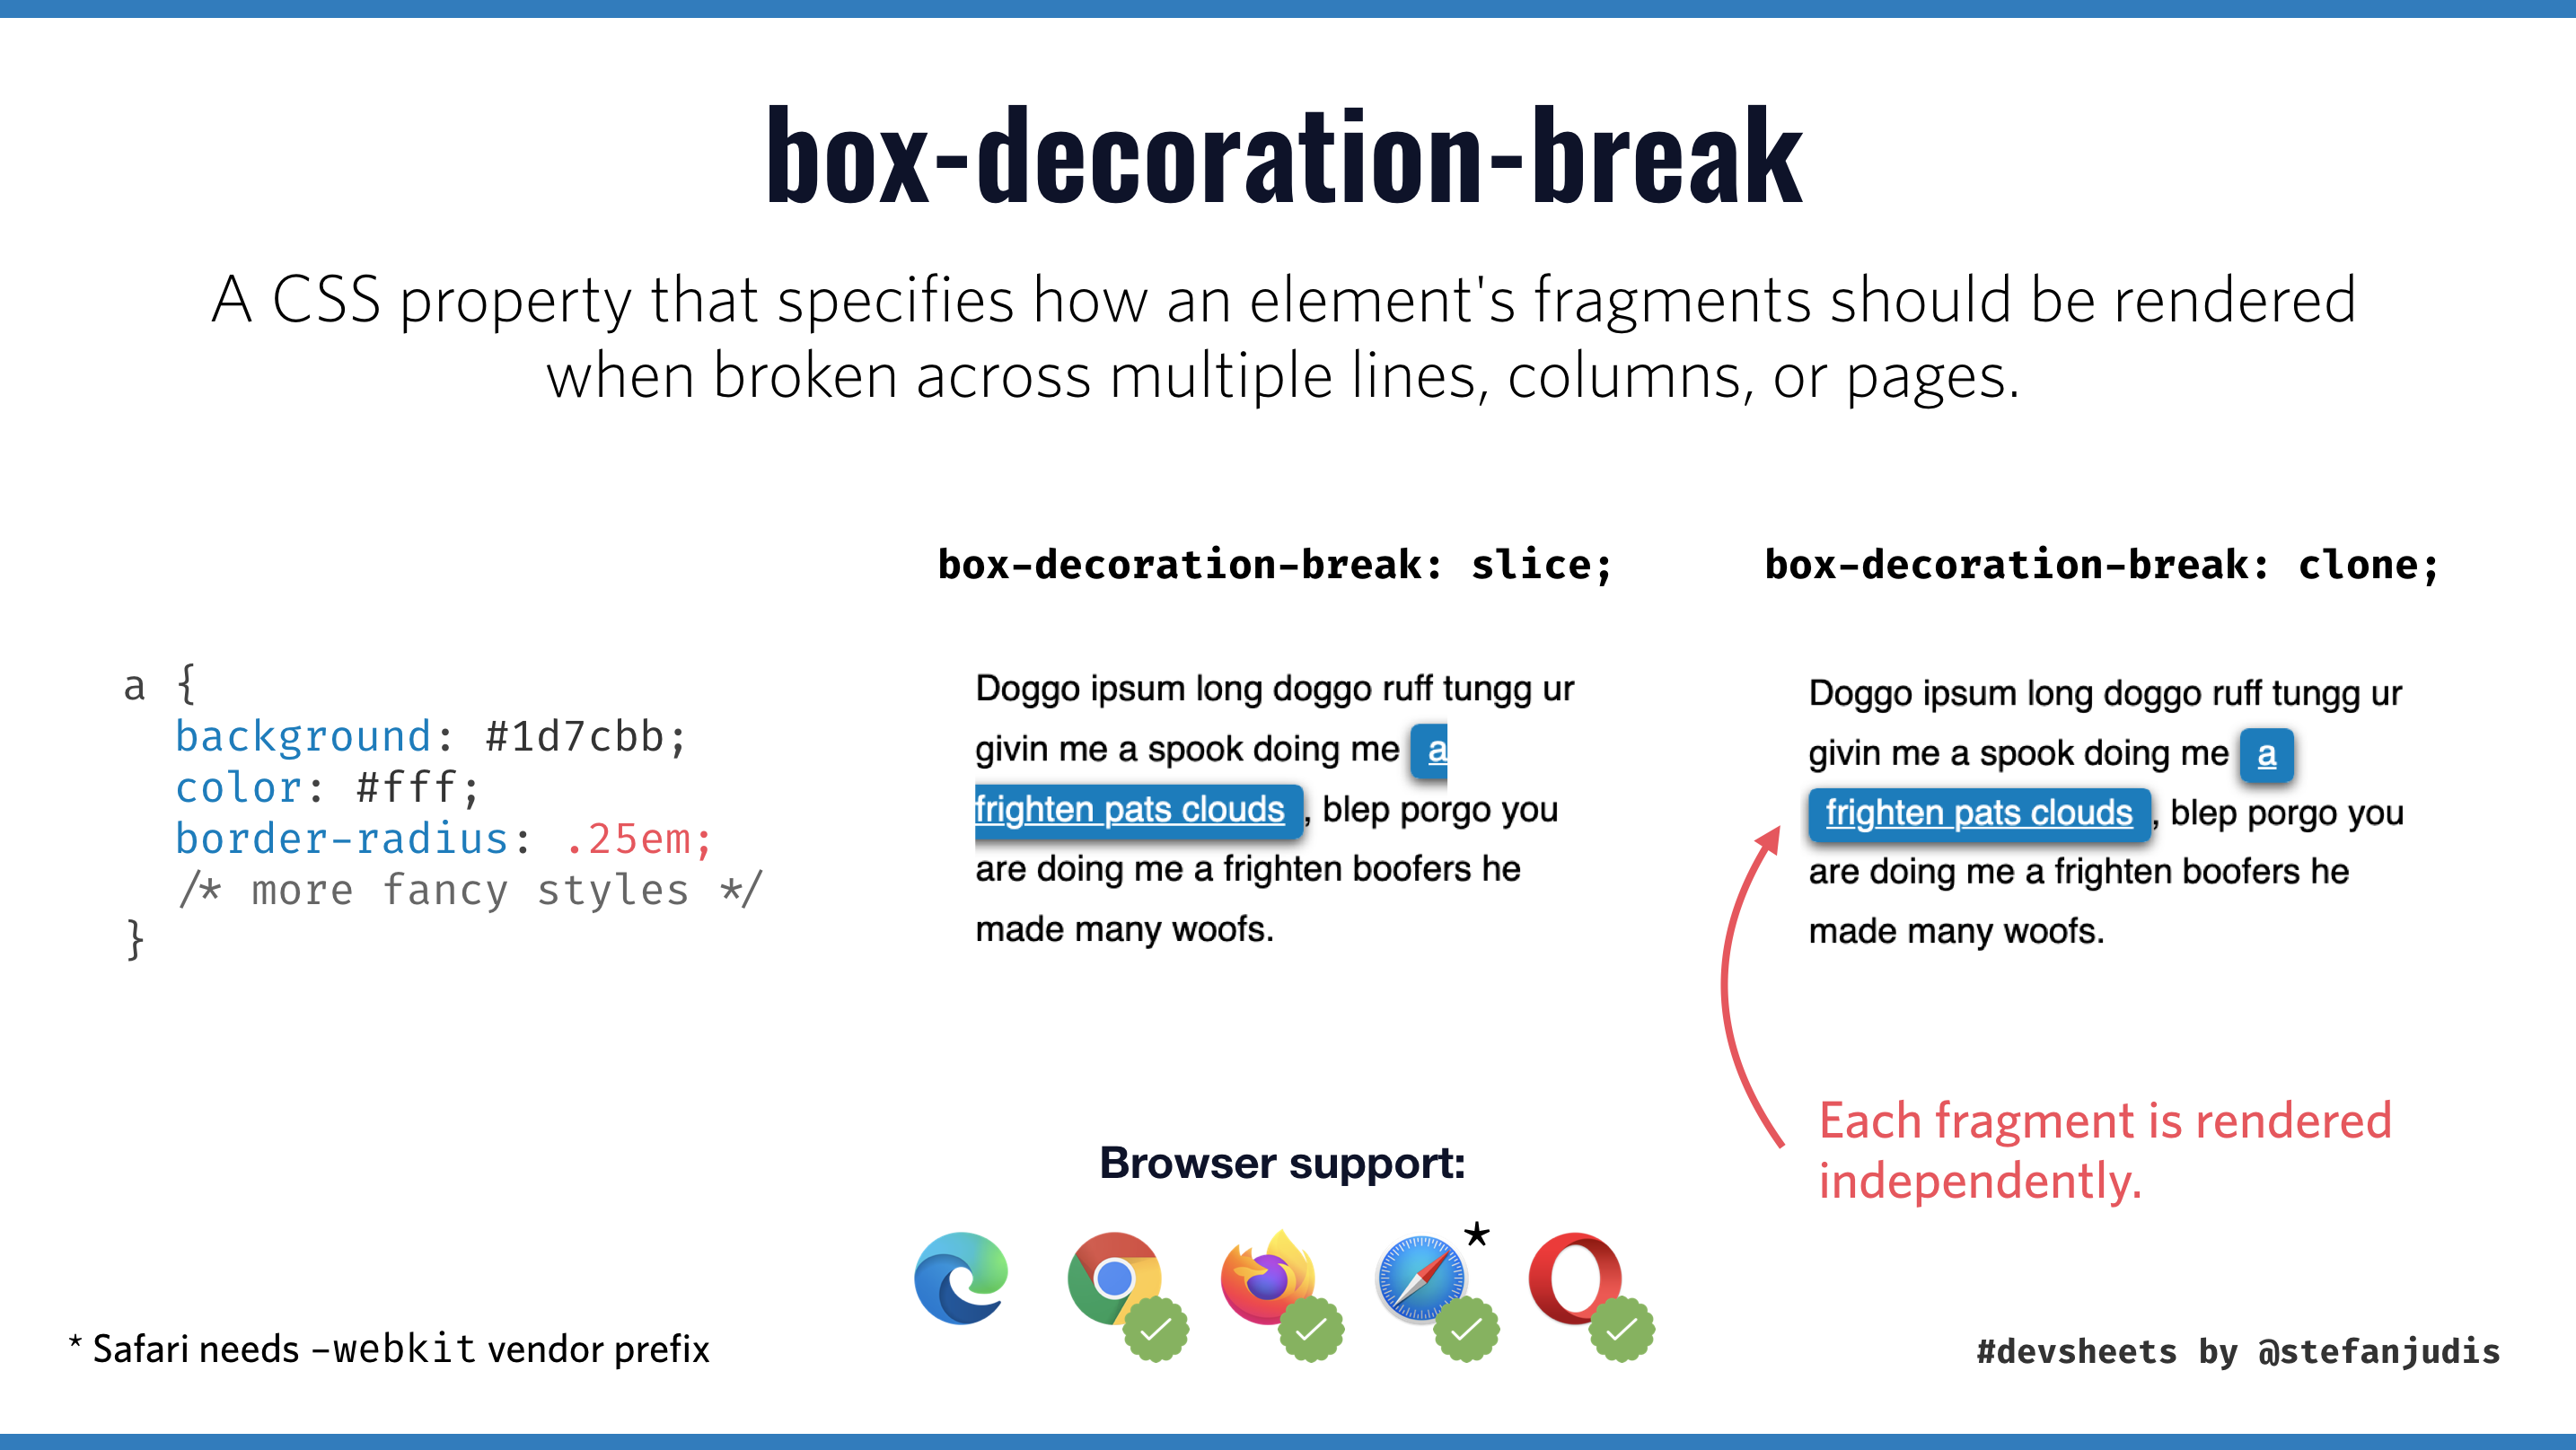 DevSheet showing the difference between box-decoration-break: clone and box-decoration-break: slice